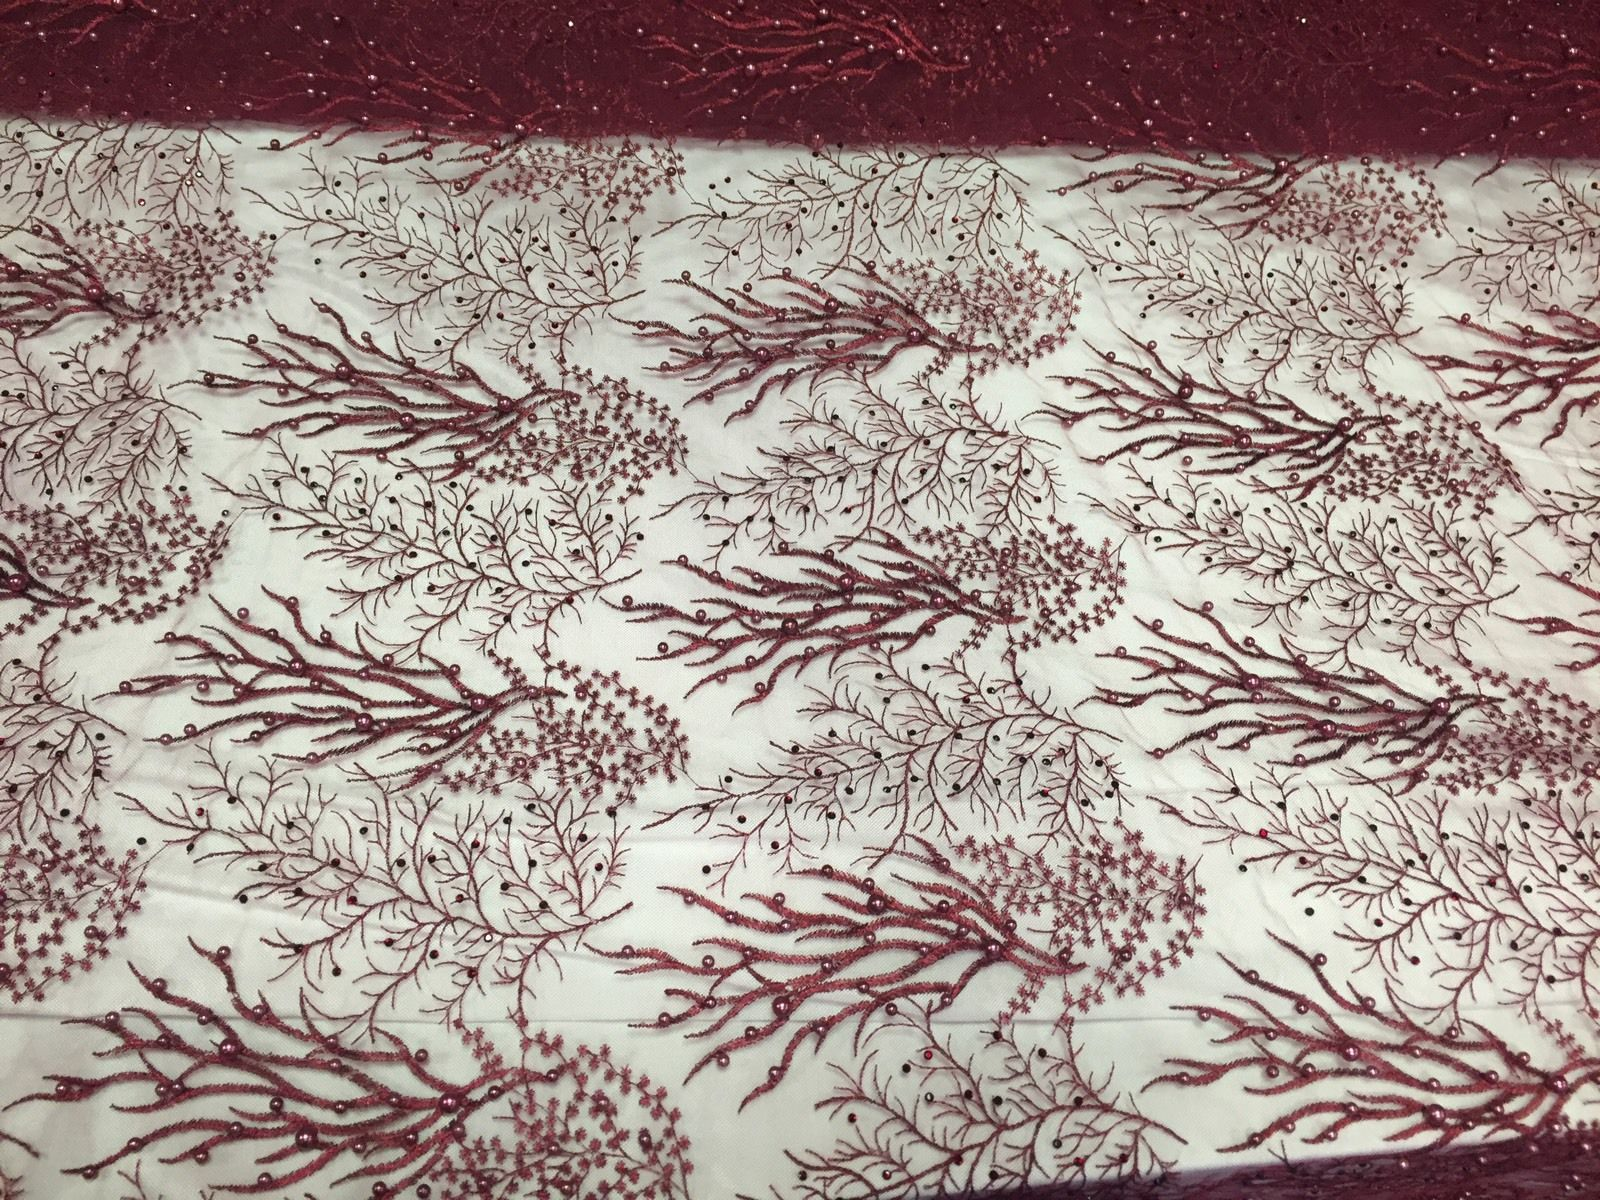 Royalty Pearls Branch Design Mesh Lace Fabric Burgundy. Sold By The Yard - KINGDOM OF FABRICS